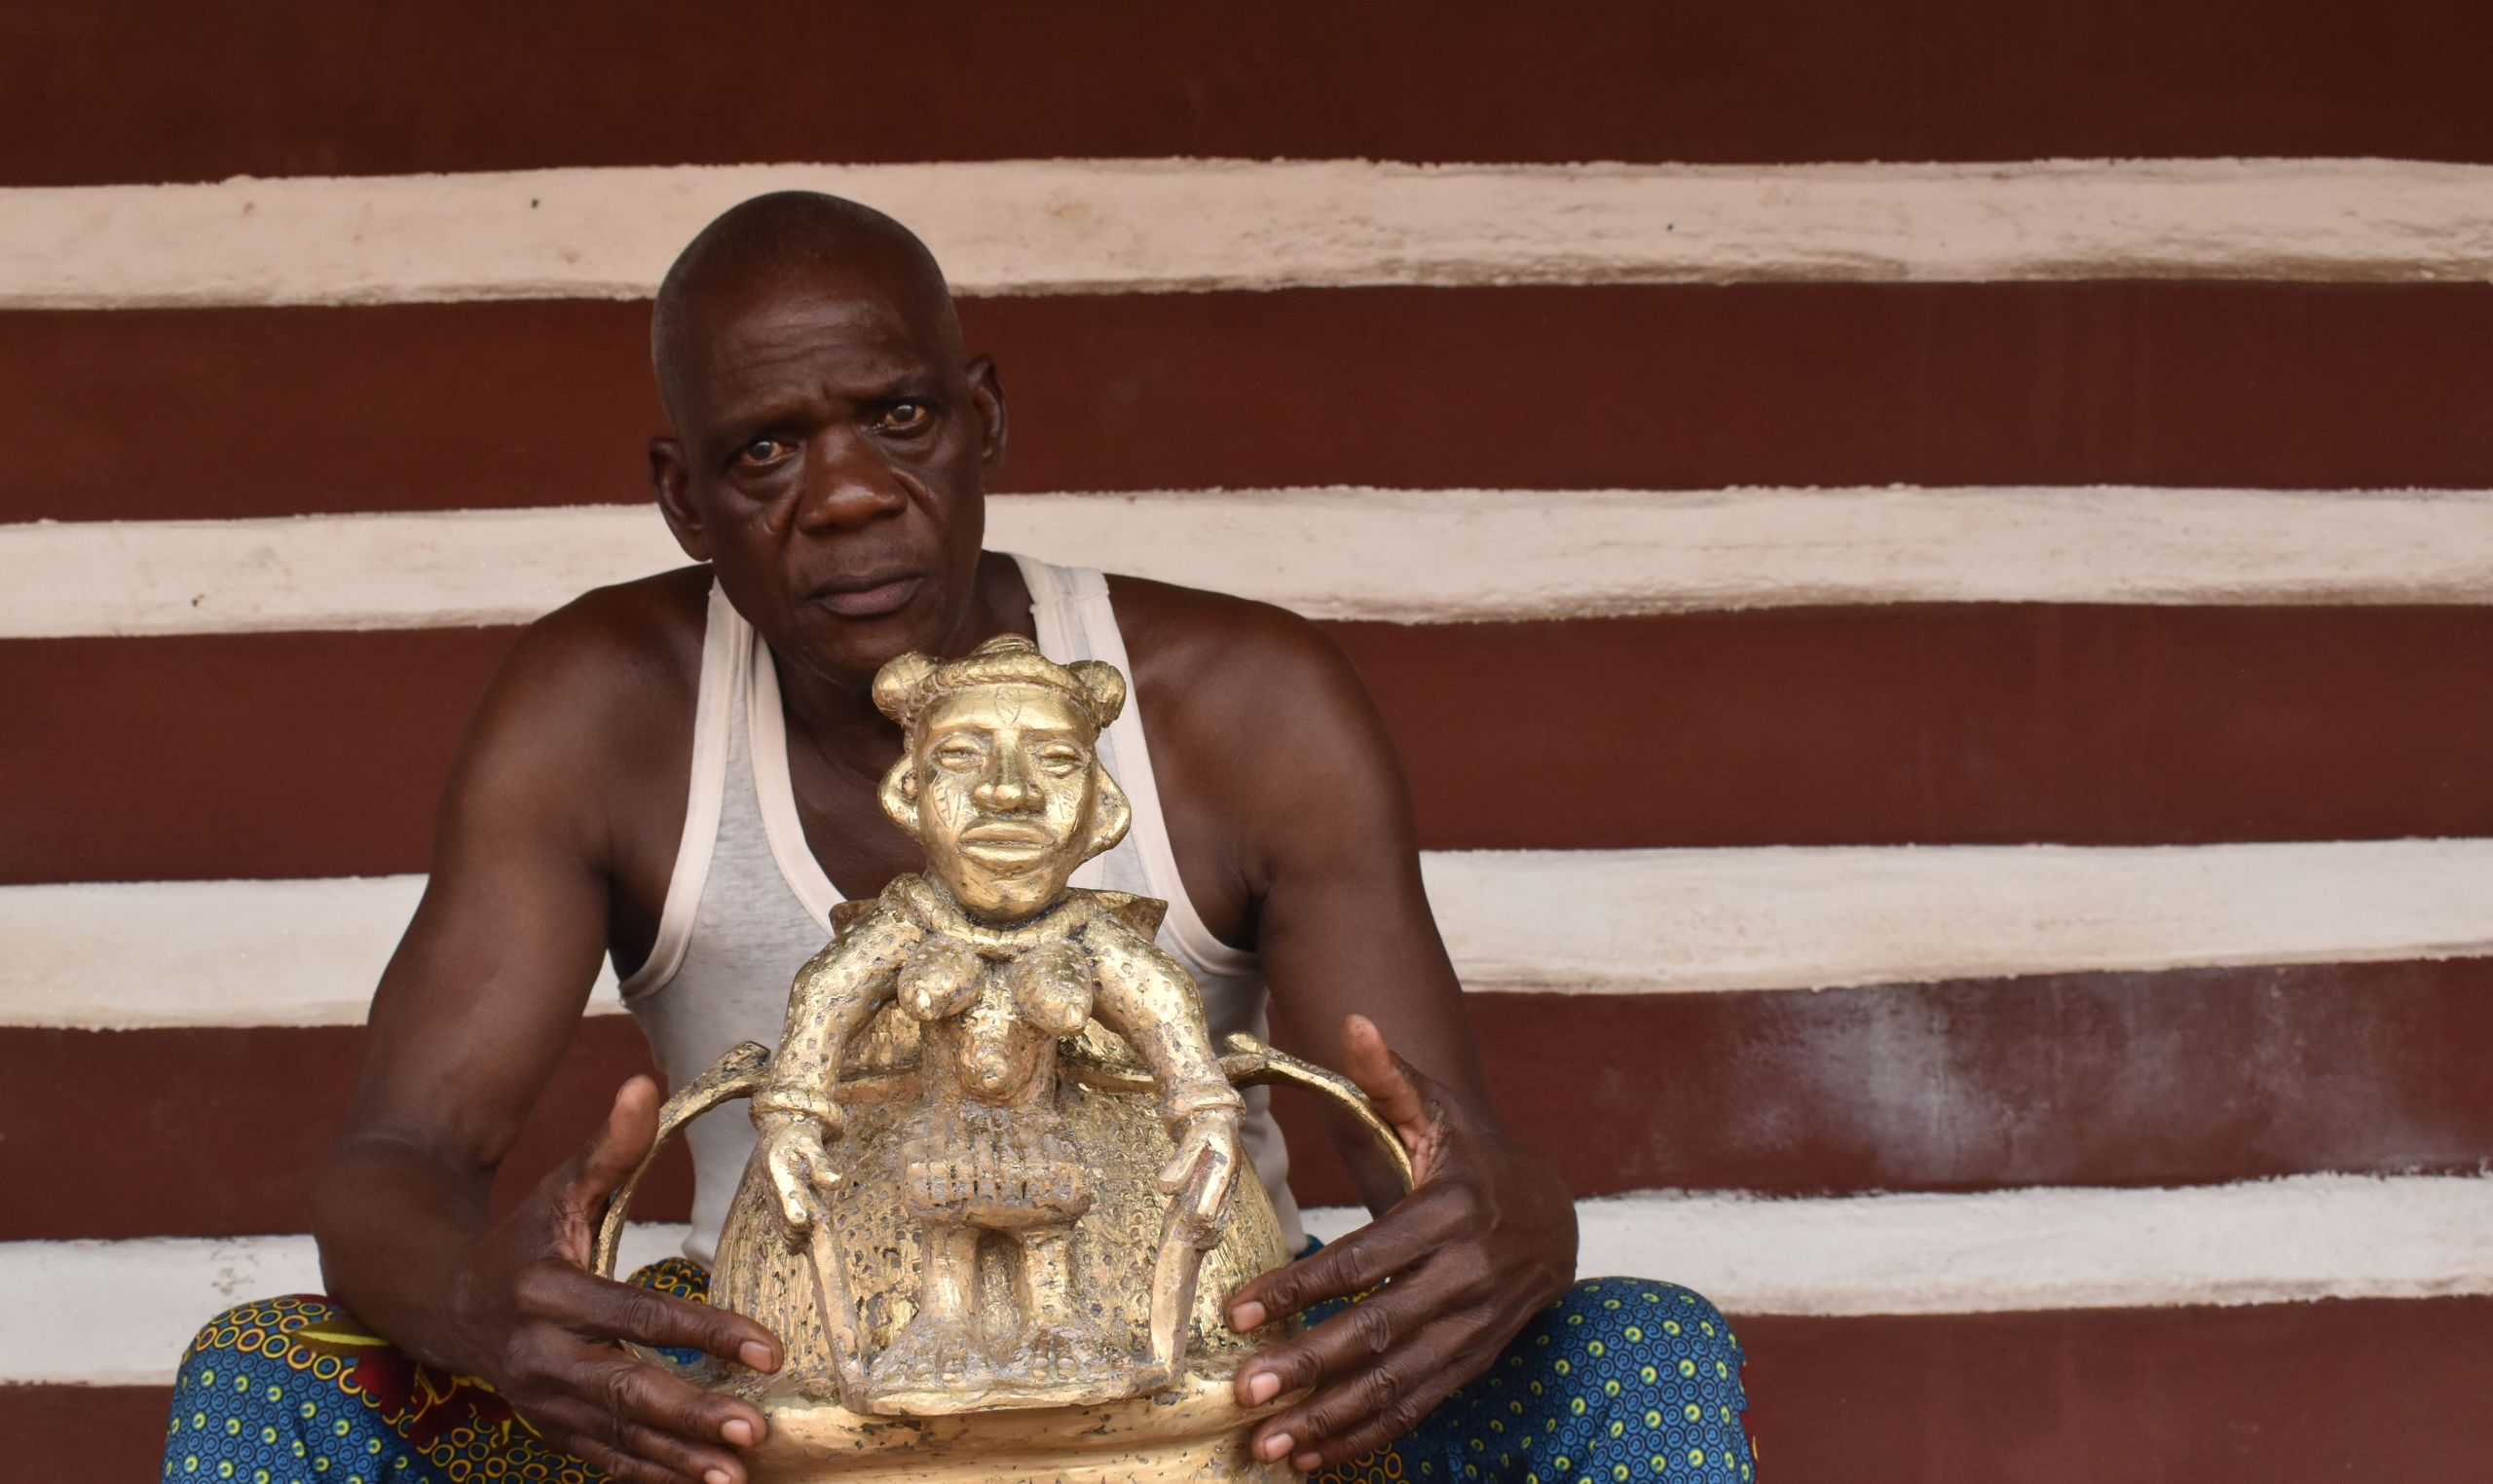 Mark Ihama, brass-caster of Igun Street, Benin City with the brass reproduction Olokun pot made for the [Re:]Entanglements exhibition. Image: Paul Basu